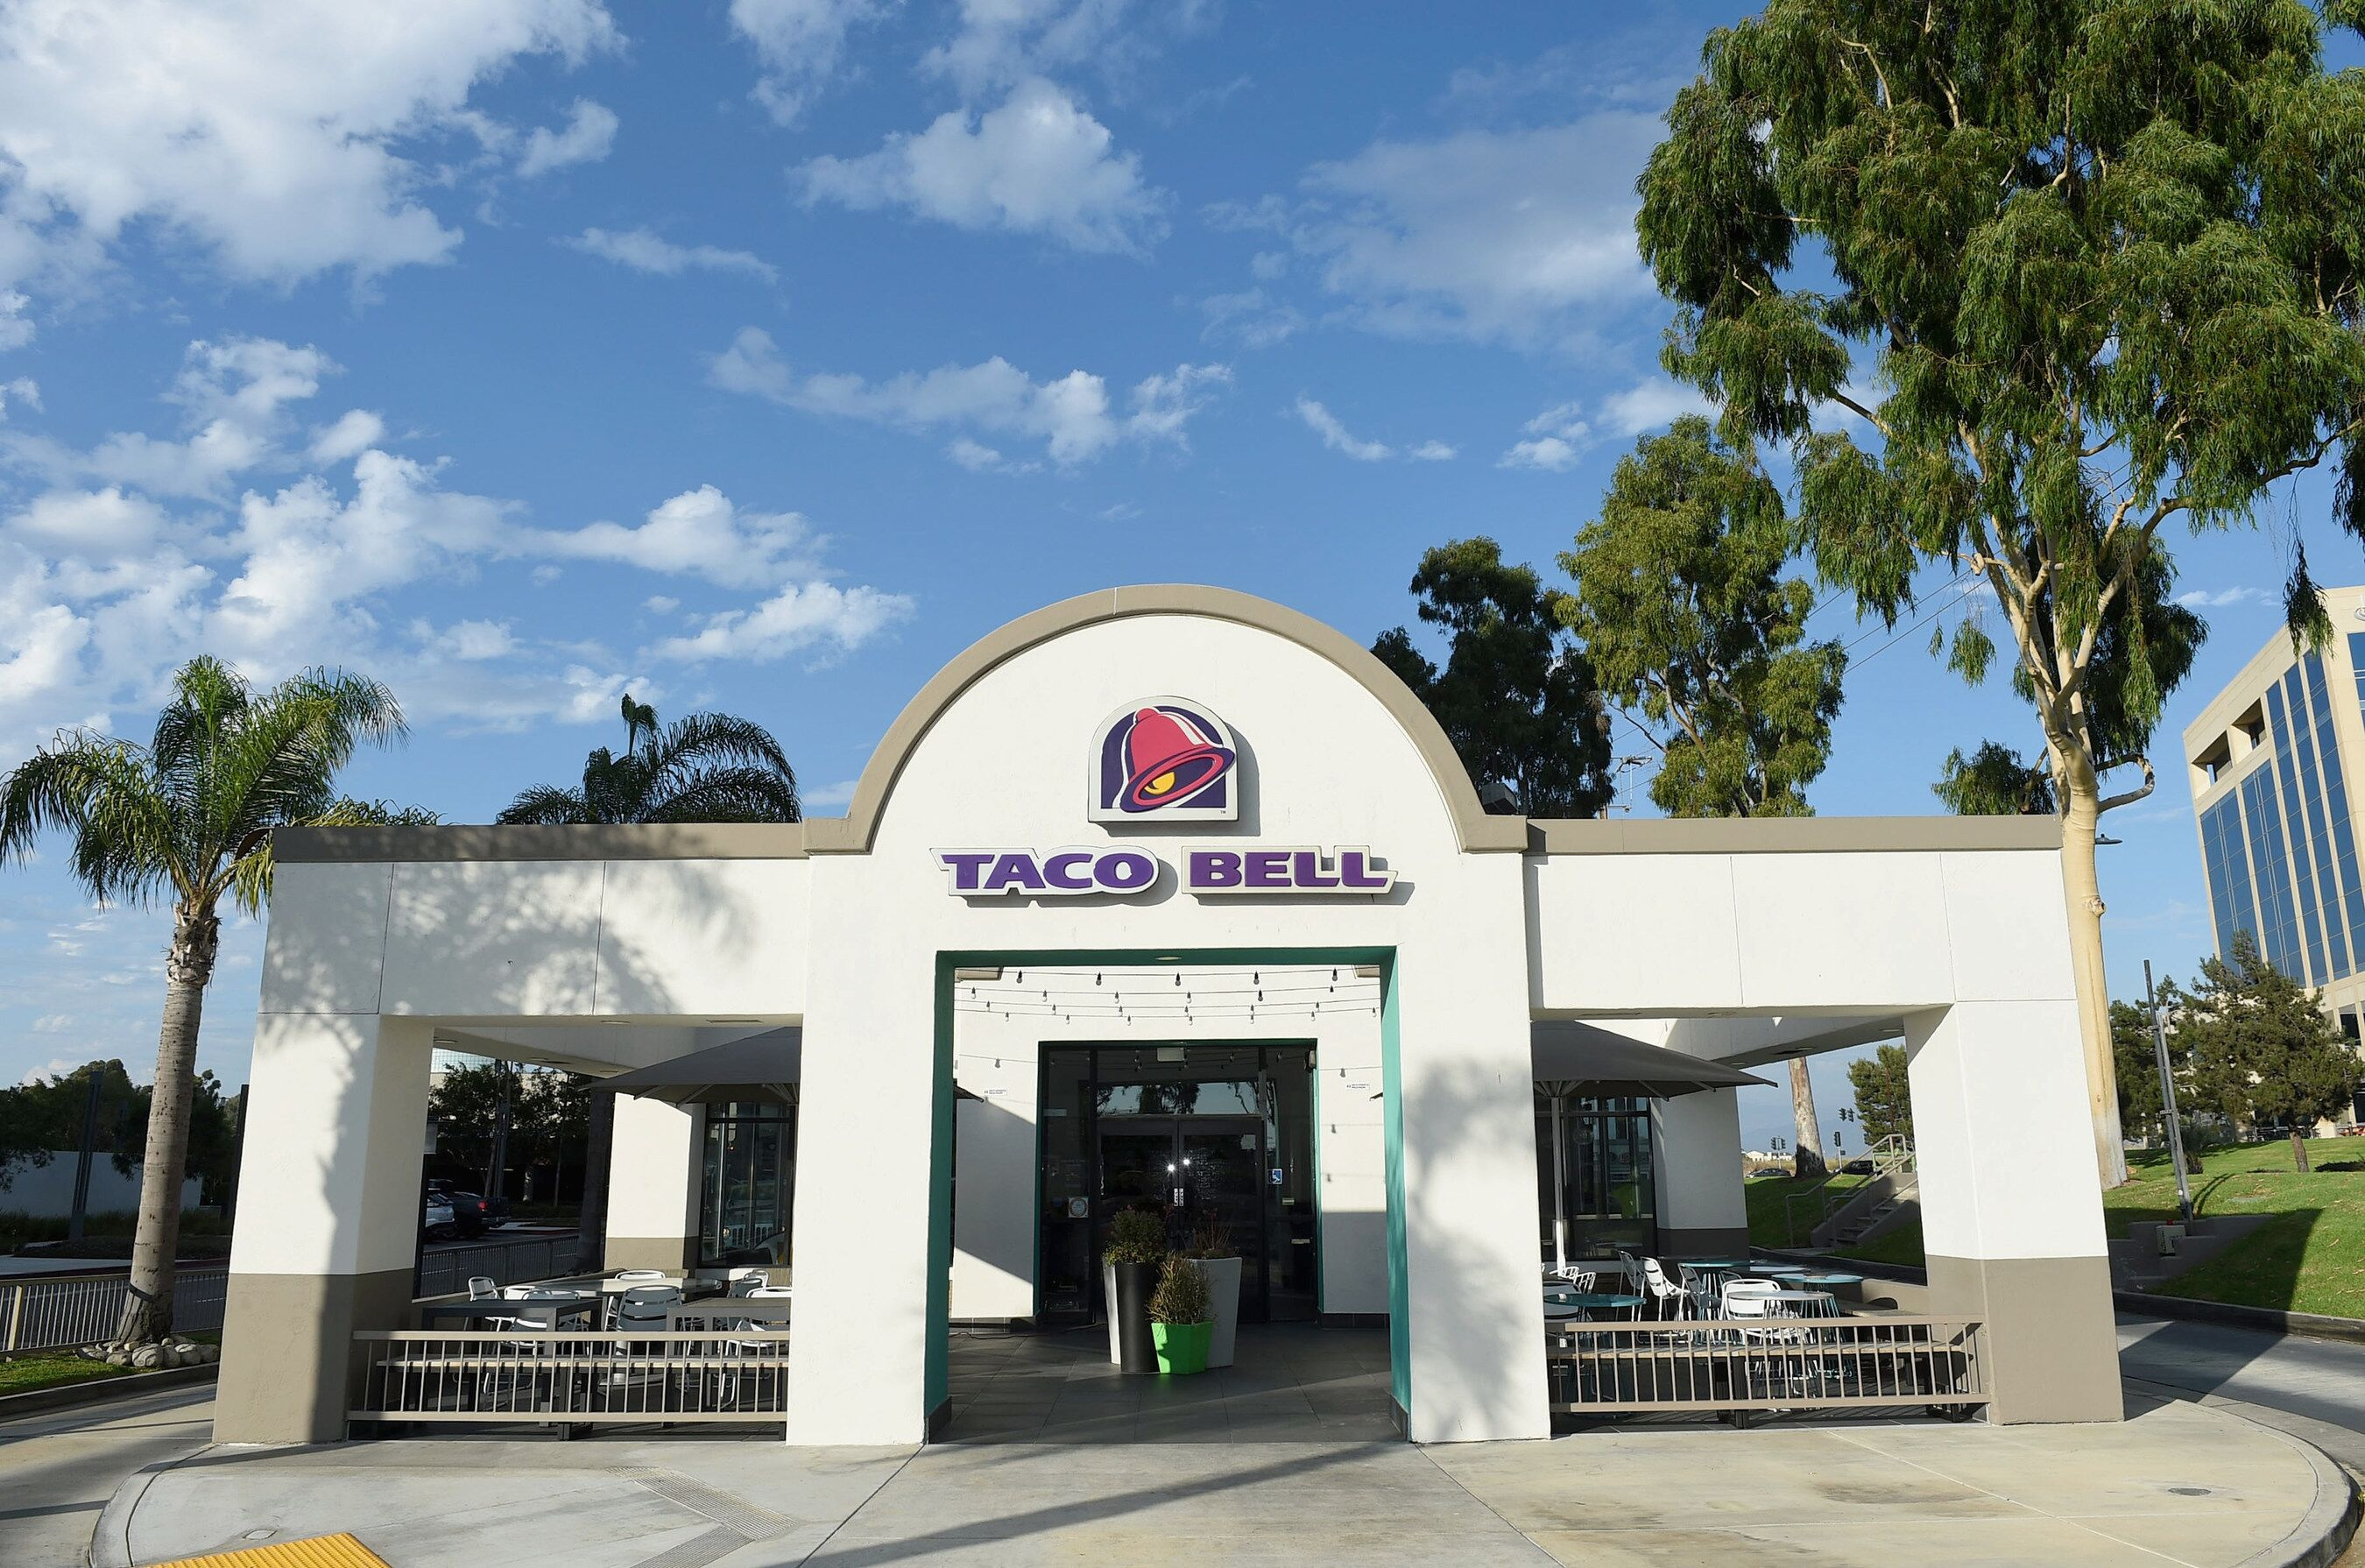 Taco Bell's steal a base, steal a taco is back for the World Series